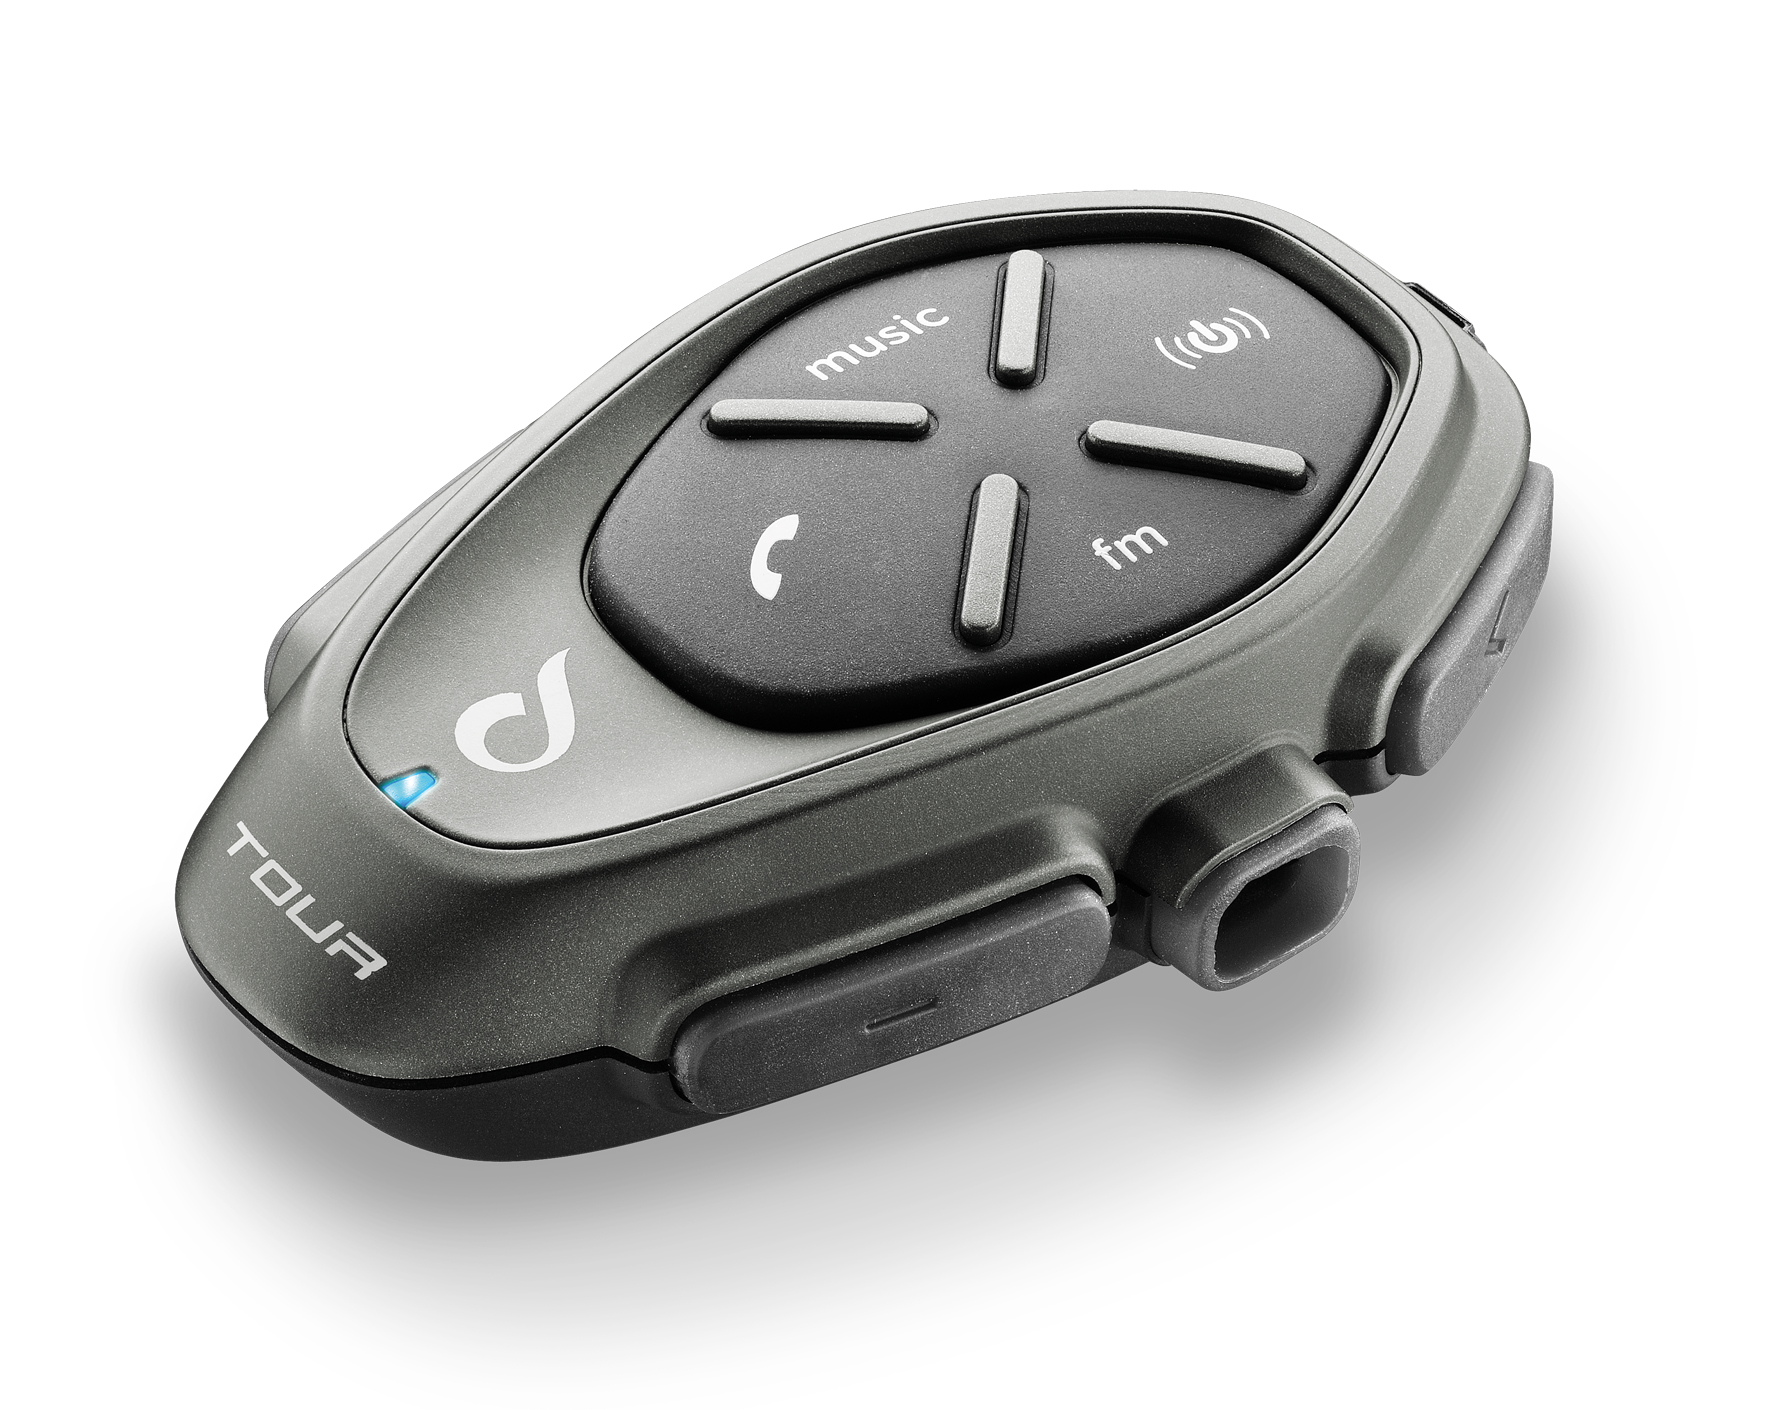 Interphone Interfono Cellular Line Tour Singolo Bluetooth 3.0 Casco moto scooter